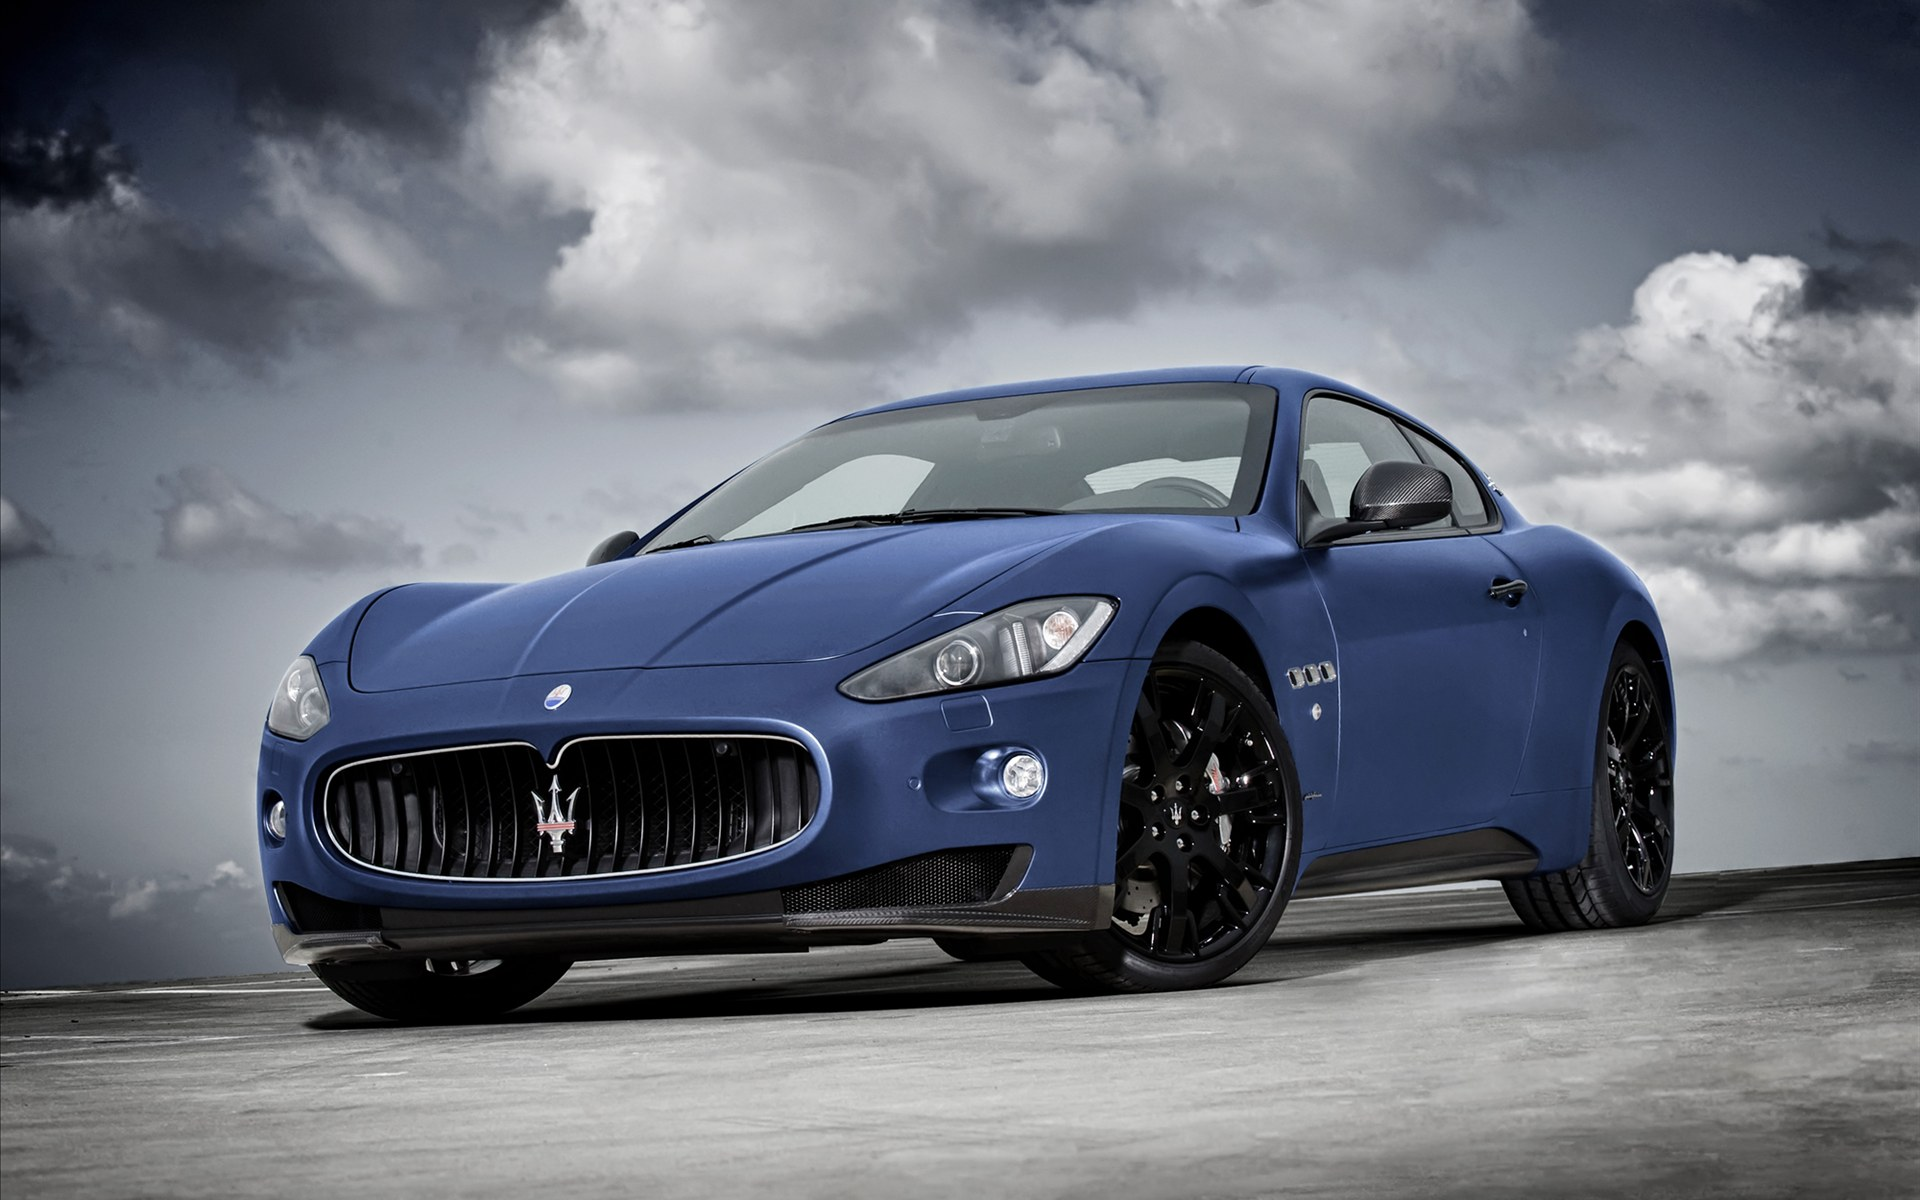 Maserati GranTurismo S 2011 Wallpaper HD Car Wallpapers 1920x1200